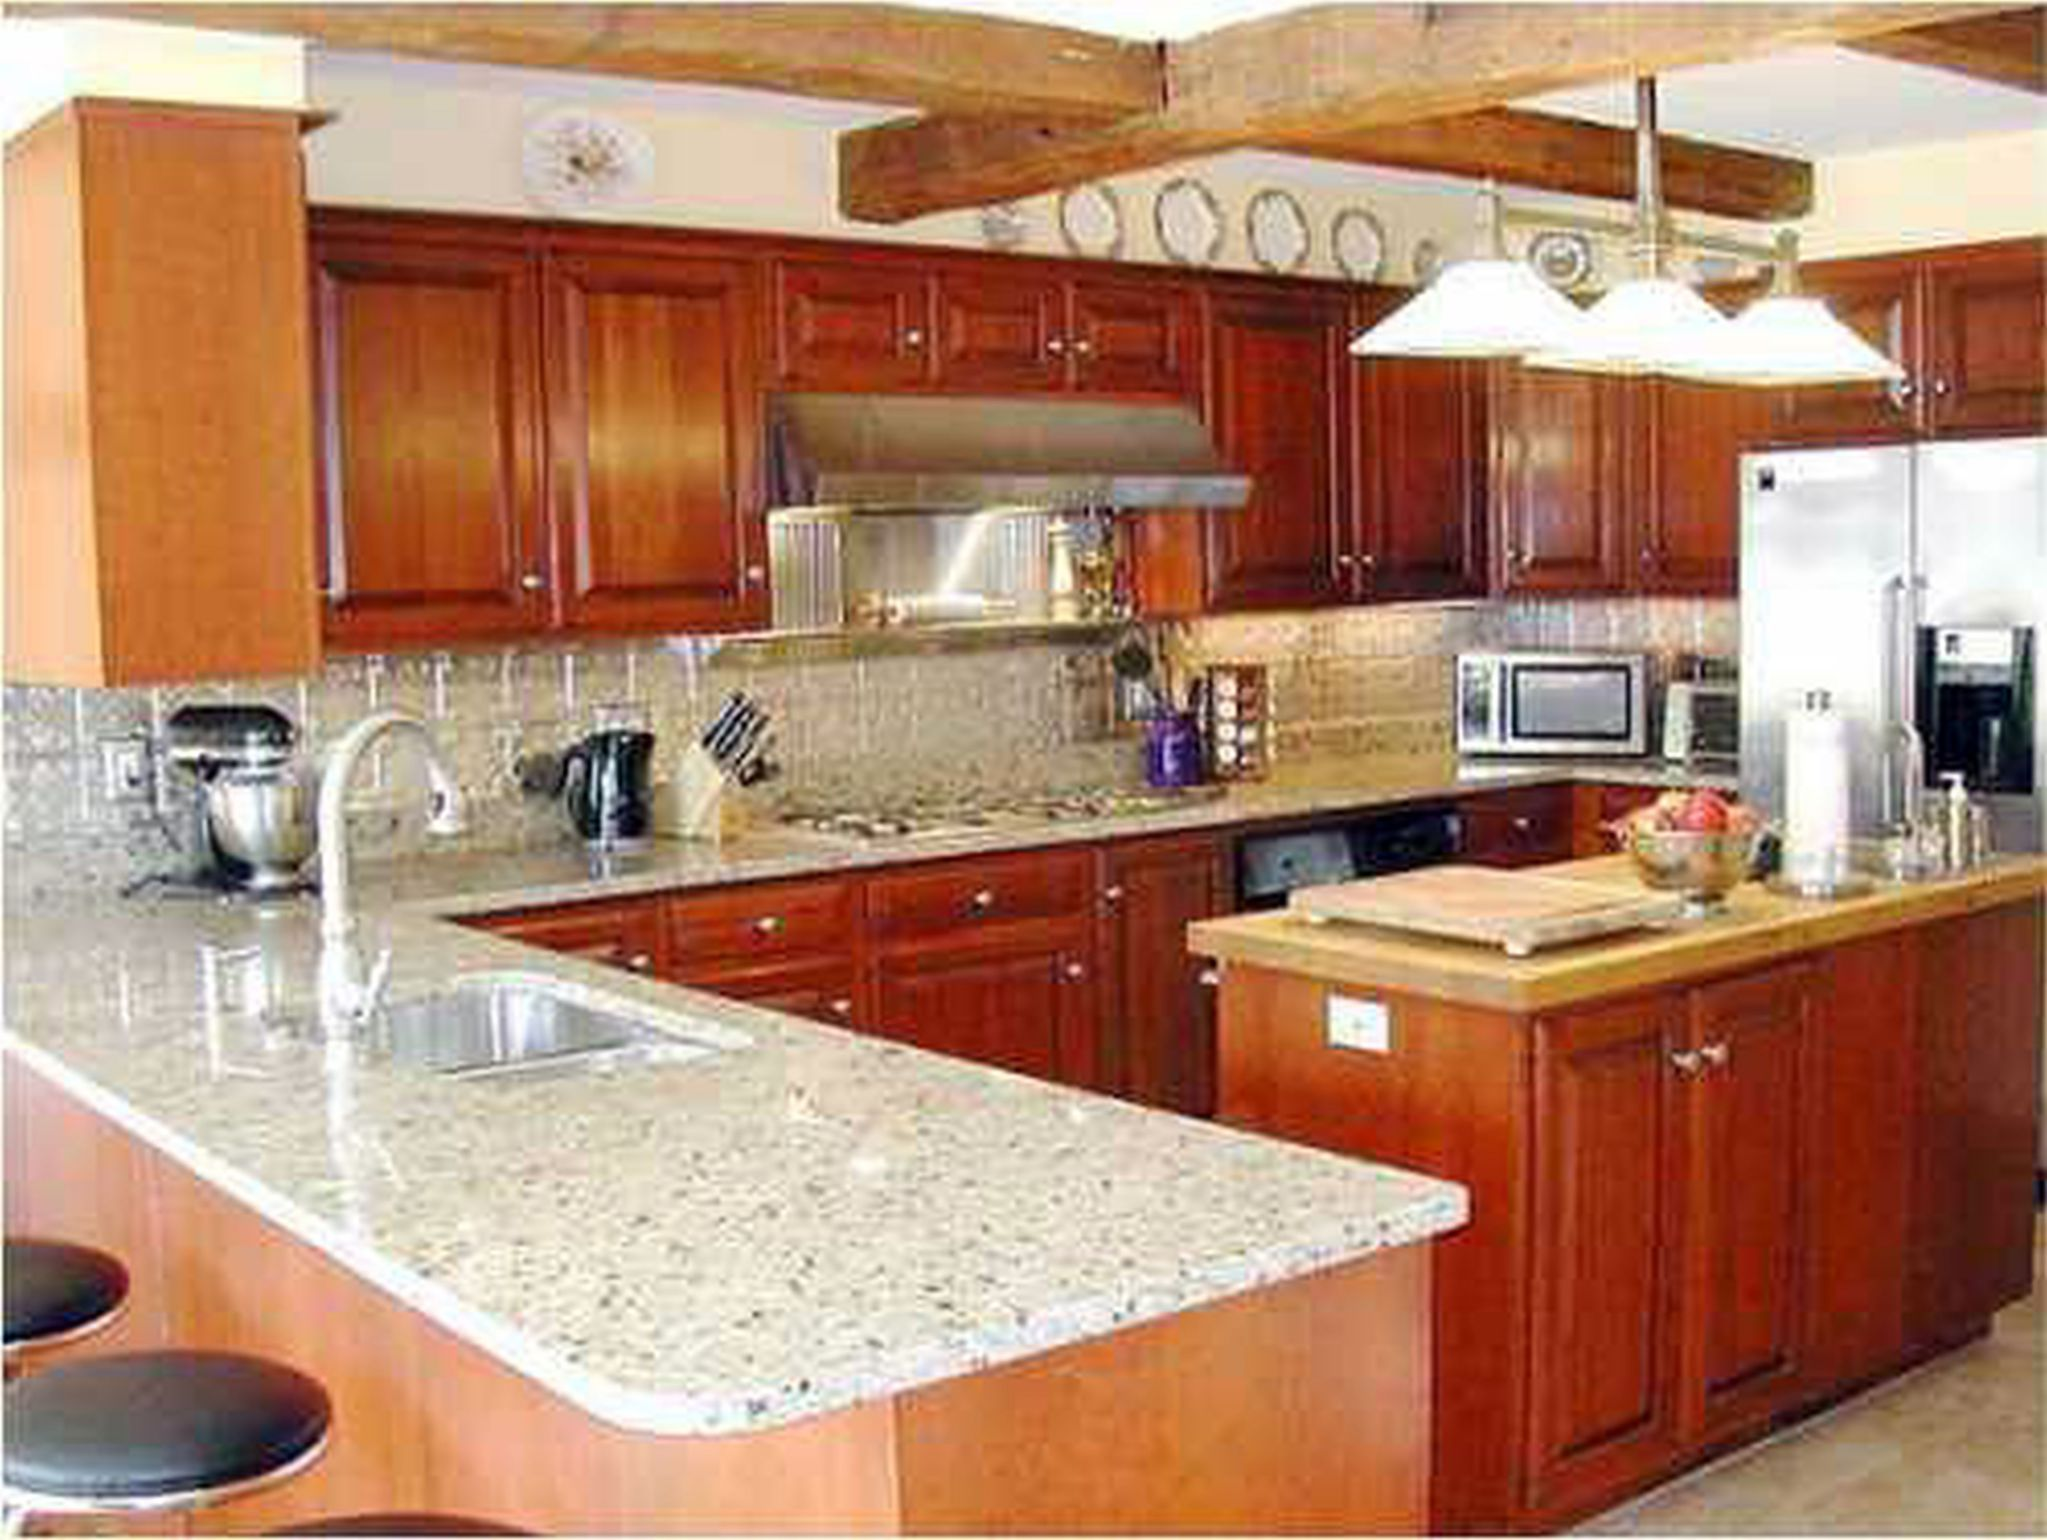 Kitchen counter decor ideas to make your cooking space for New home decorating ideas on a budget